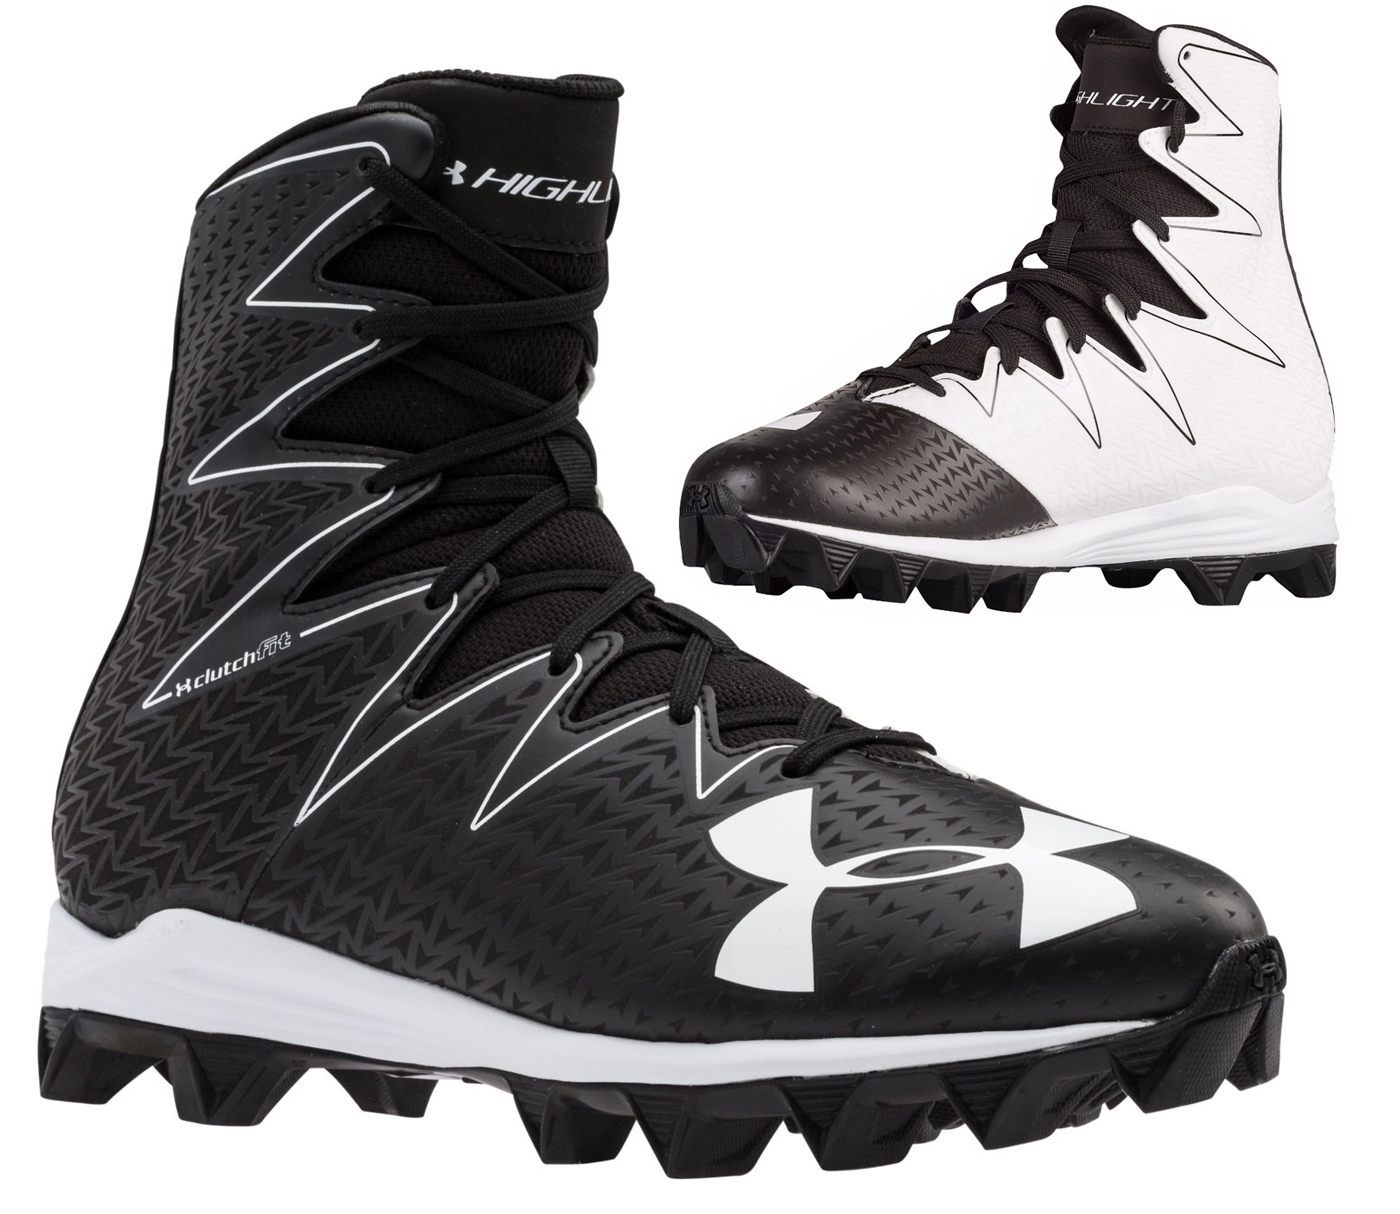 Under Armour Highlight Football Cleats Cheap Off34 The Largest